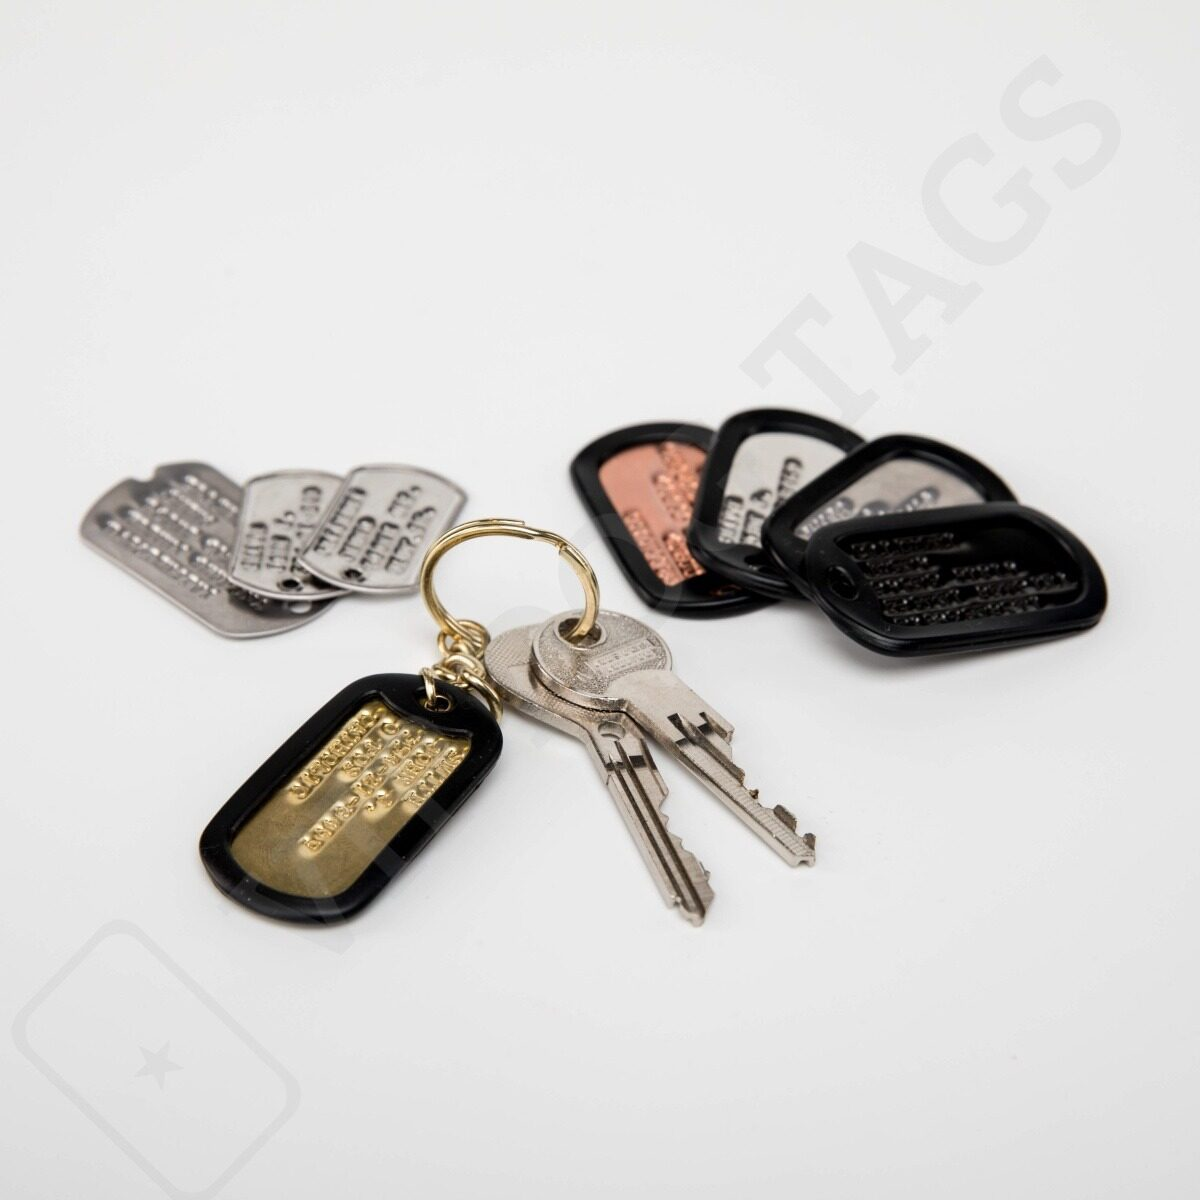 USA_dogtags_for_keys